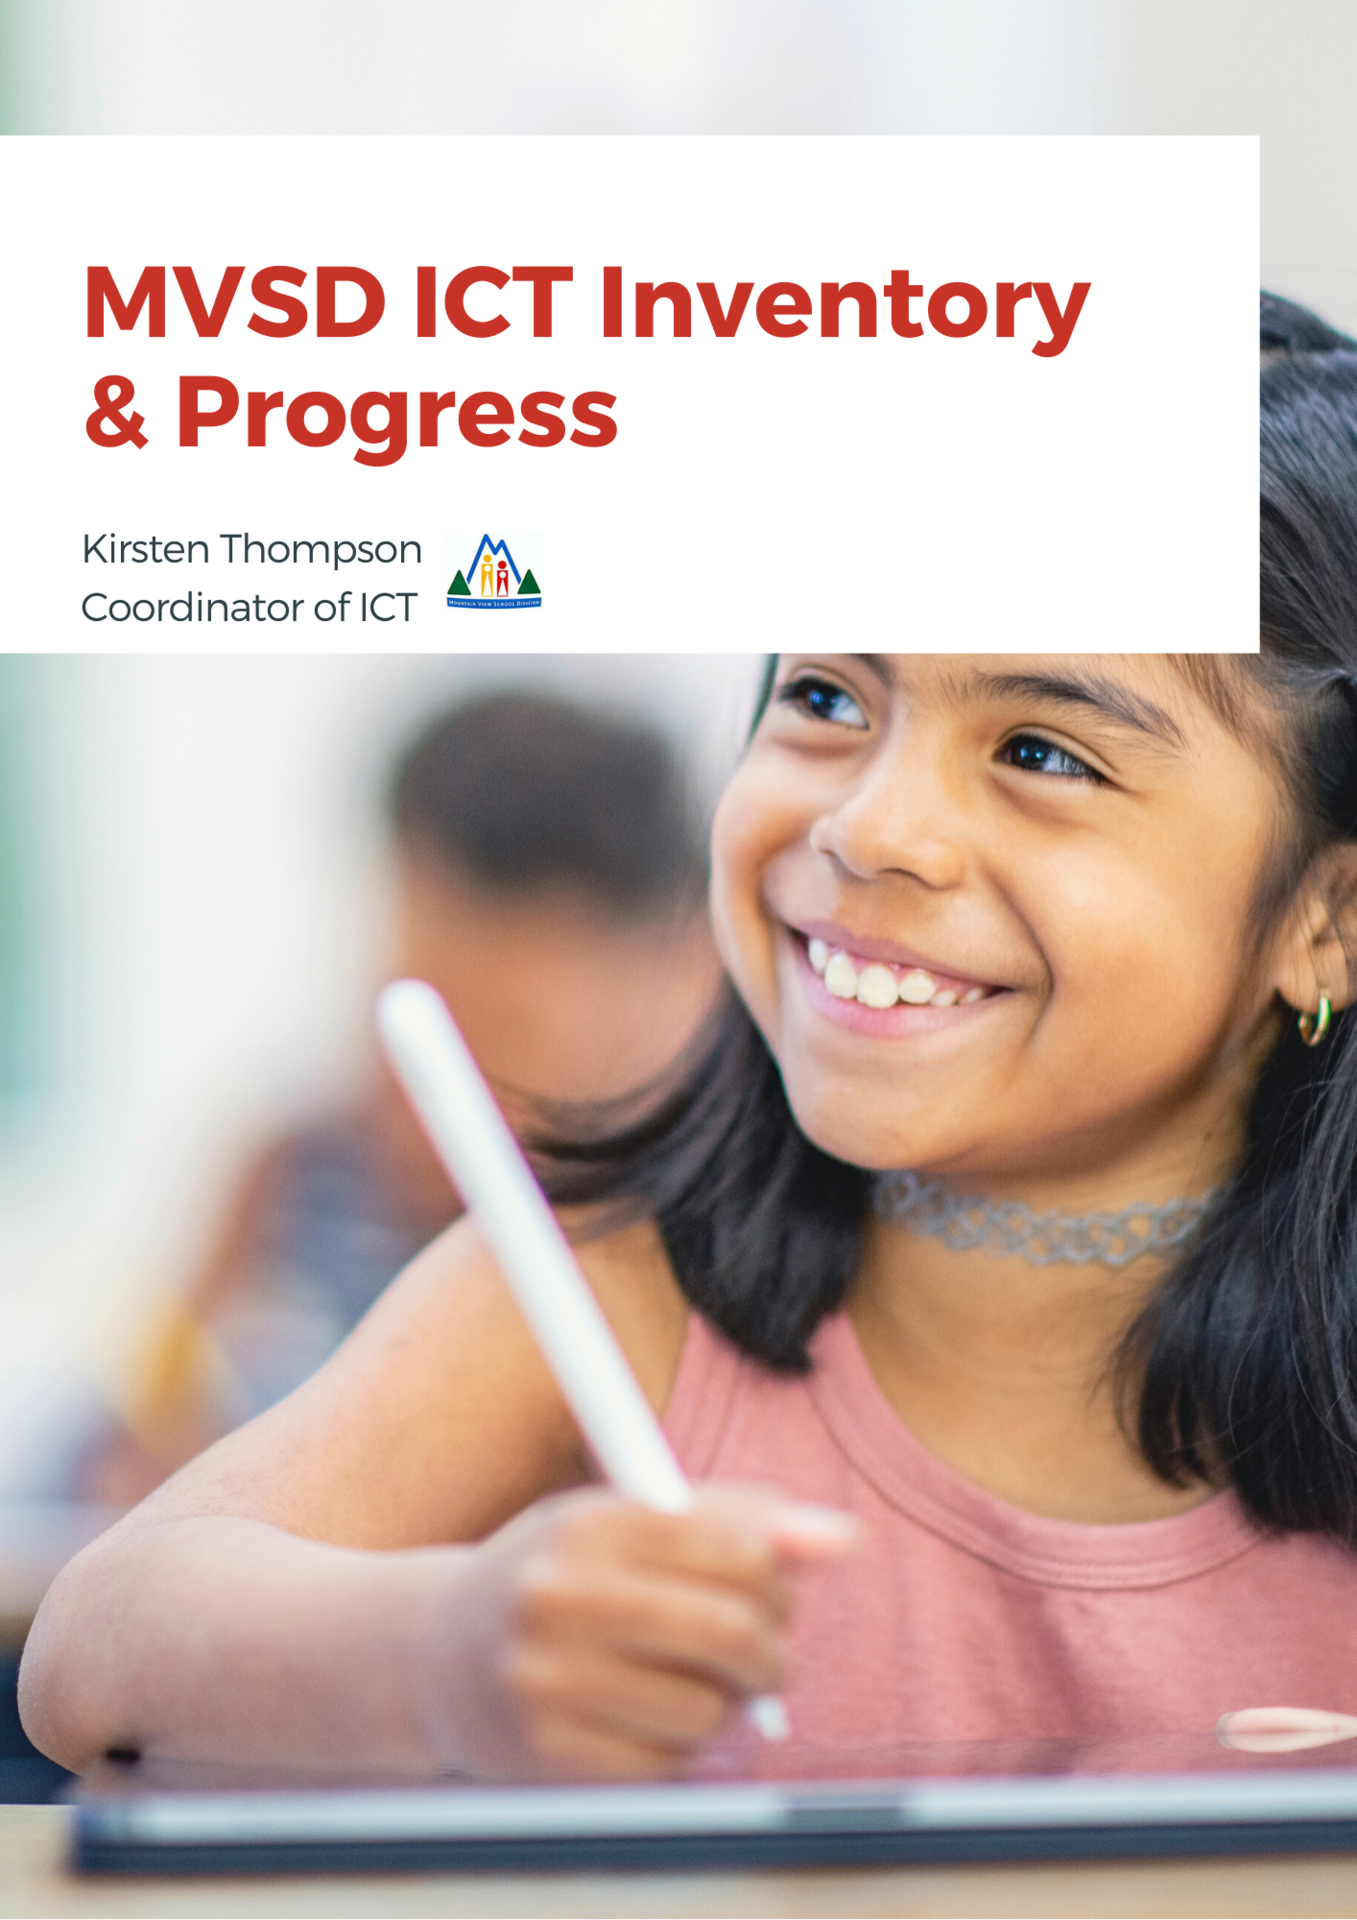 MVSD ICT Inventory & Progress Link